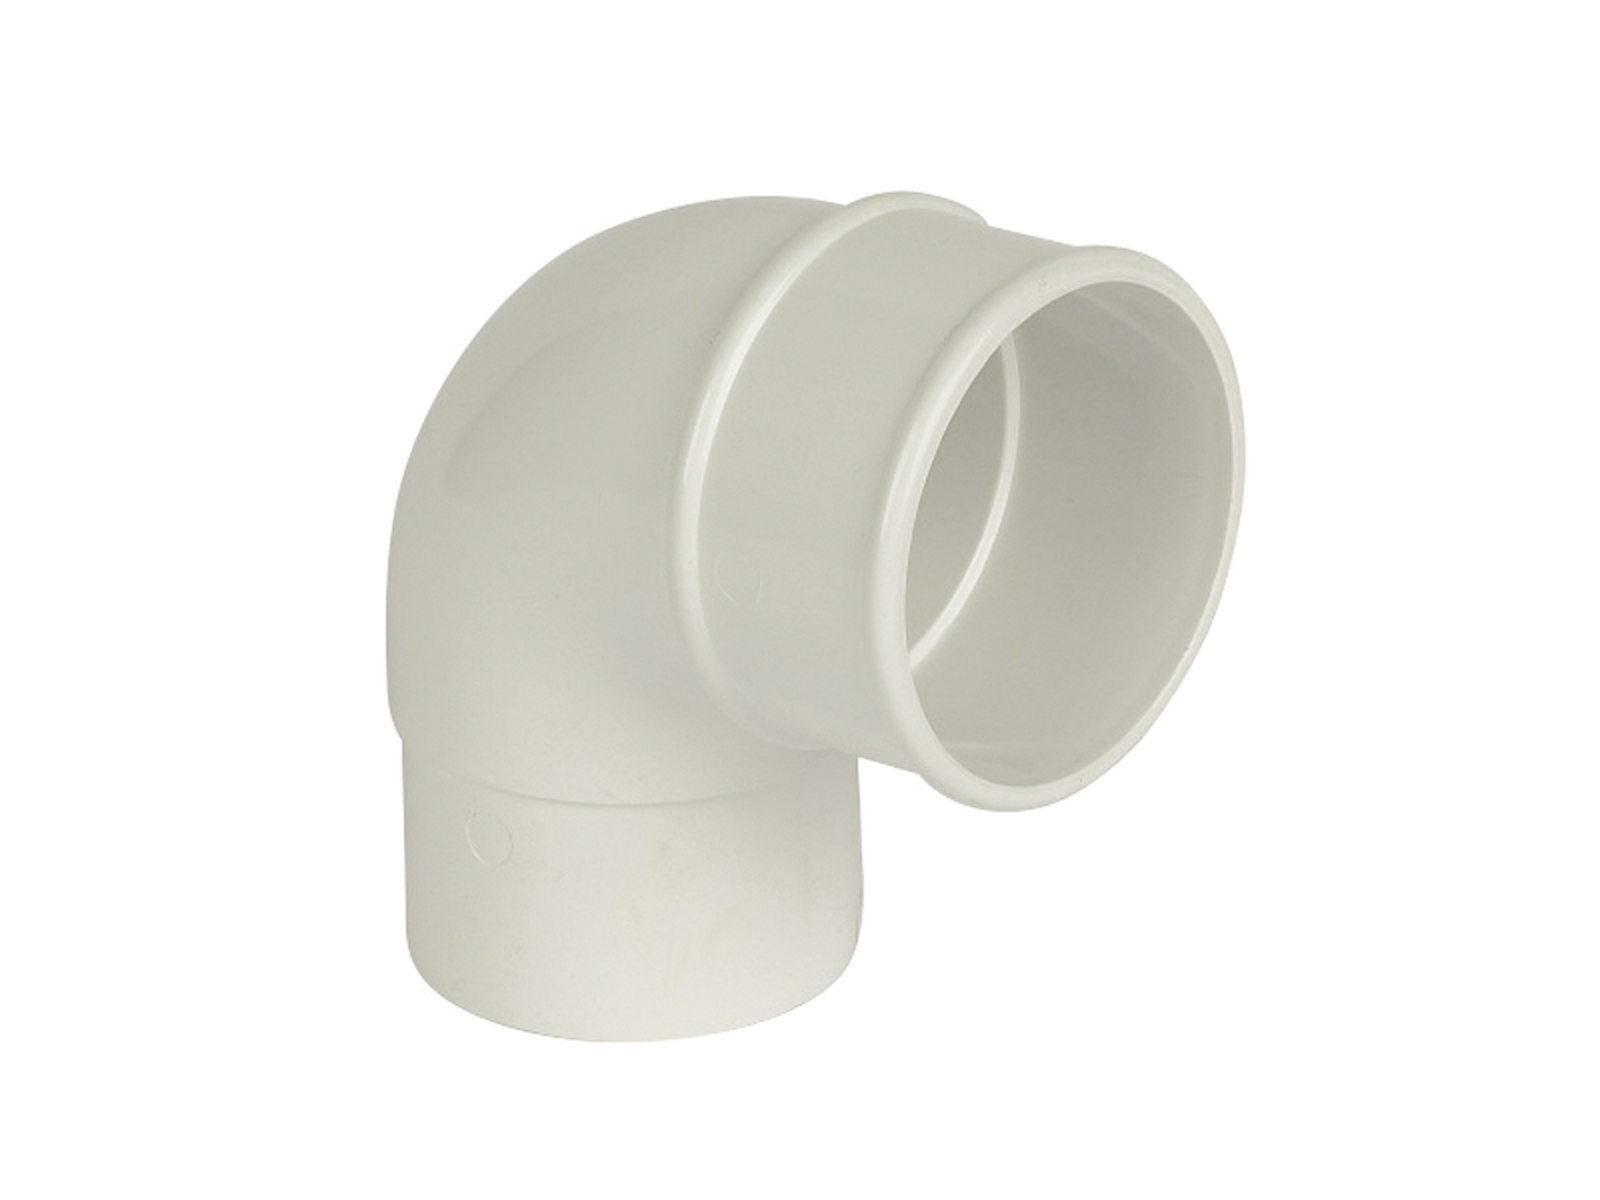 FLOPLAST 68MM ROUND DOWNPIPE - RB1 92.5* OFFSET BEND - WHITE